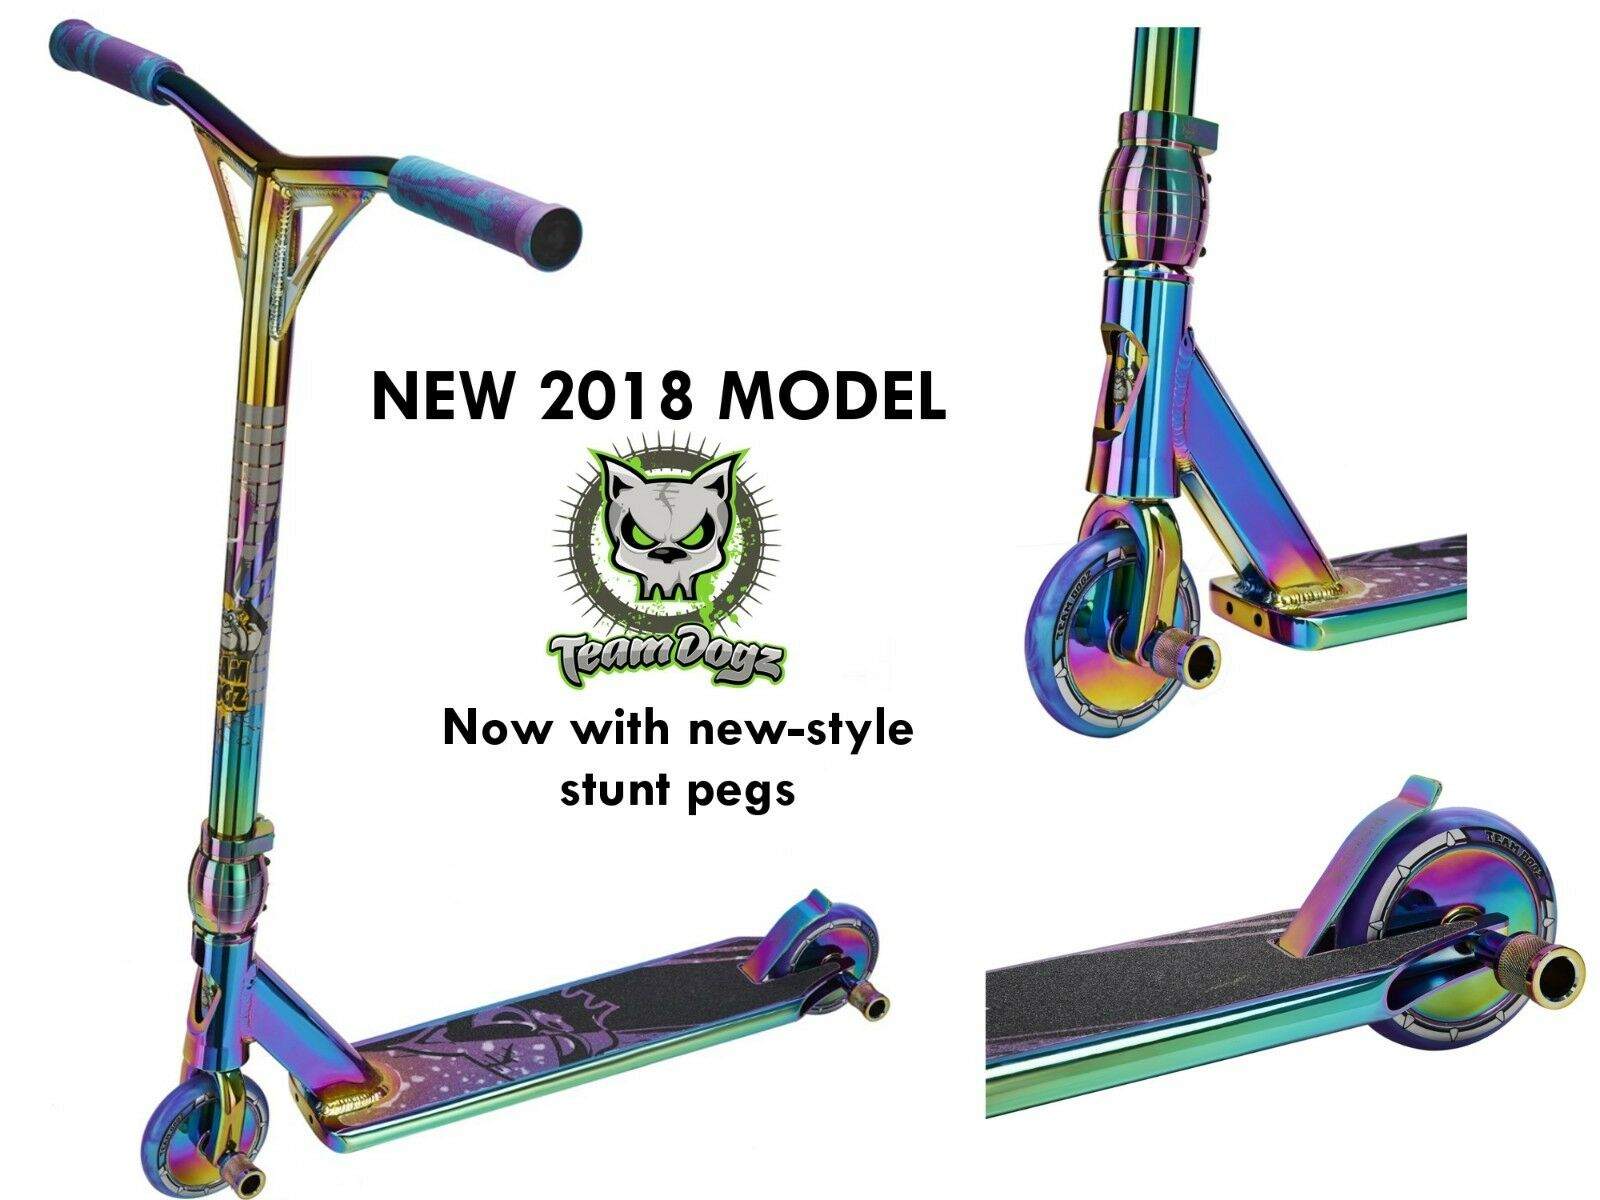 NEW TEAM DOGZ PRO 4 CUSTOM NEOCHROME RAINBOW ALUMINIUM STUNT SCOOTER